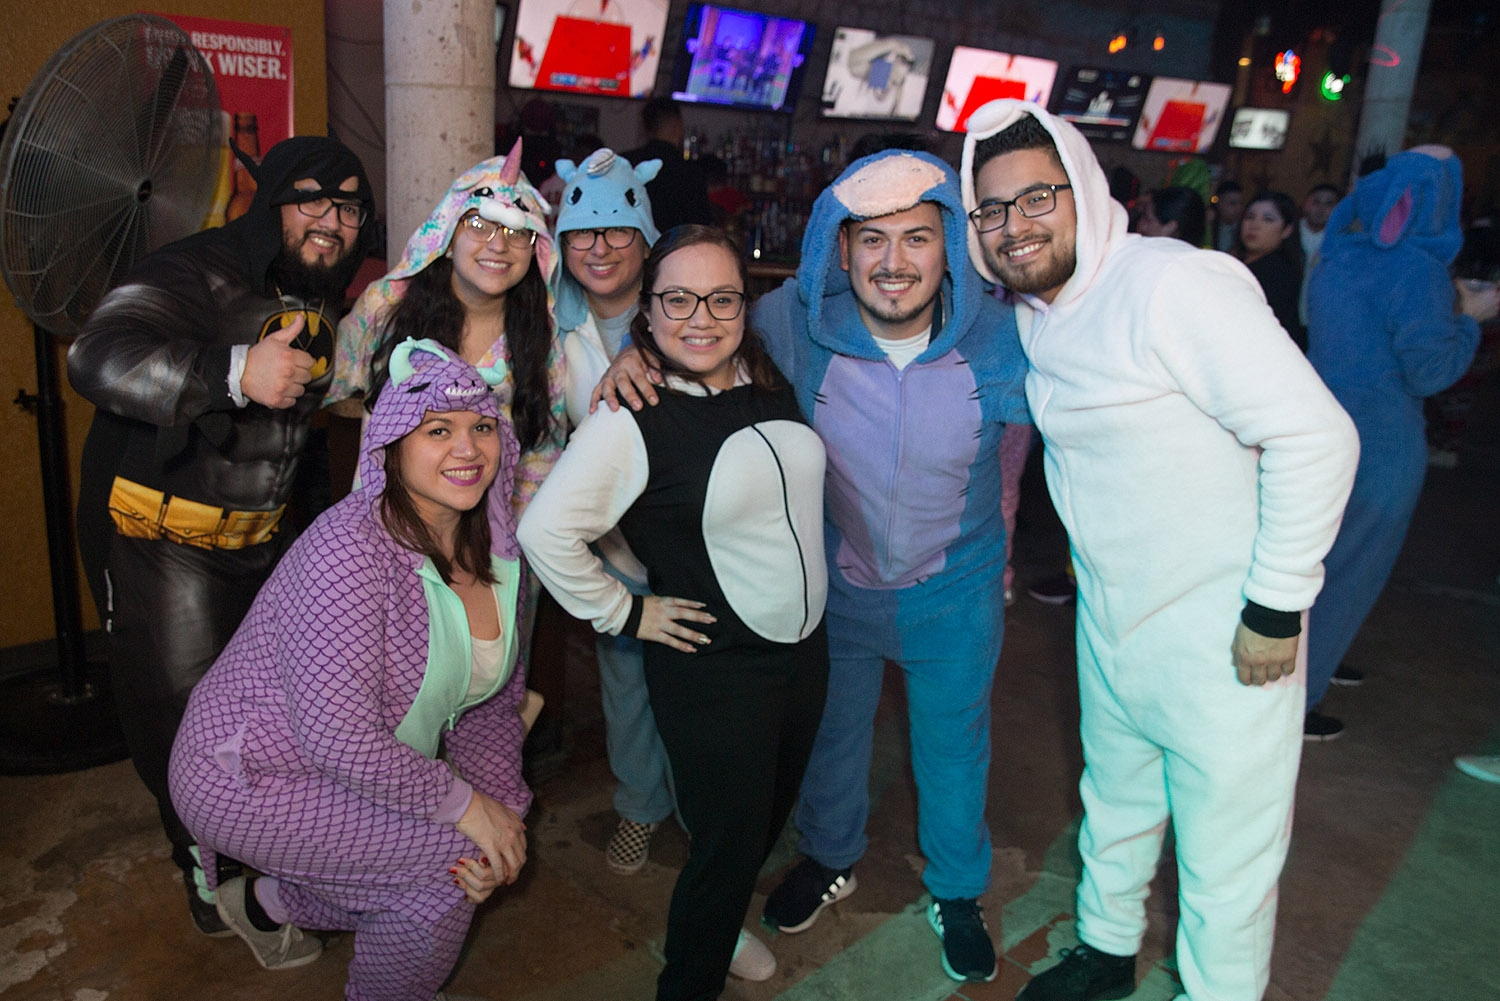 Pub runners have some drinks and bust a few moves during the onesie-themed Pub Run at Moses Rose's Hideout, Jan. 4, 2019. <em><b>Photo by B. Kay Richter | Heron contributor</b></em>